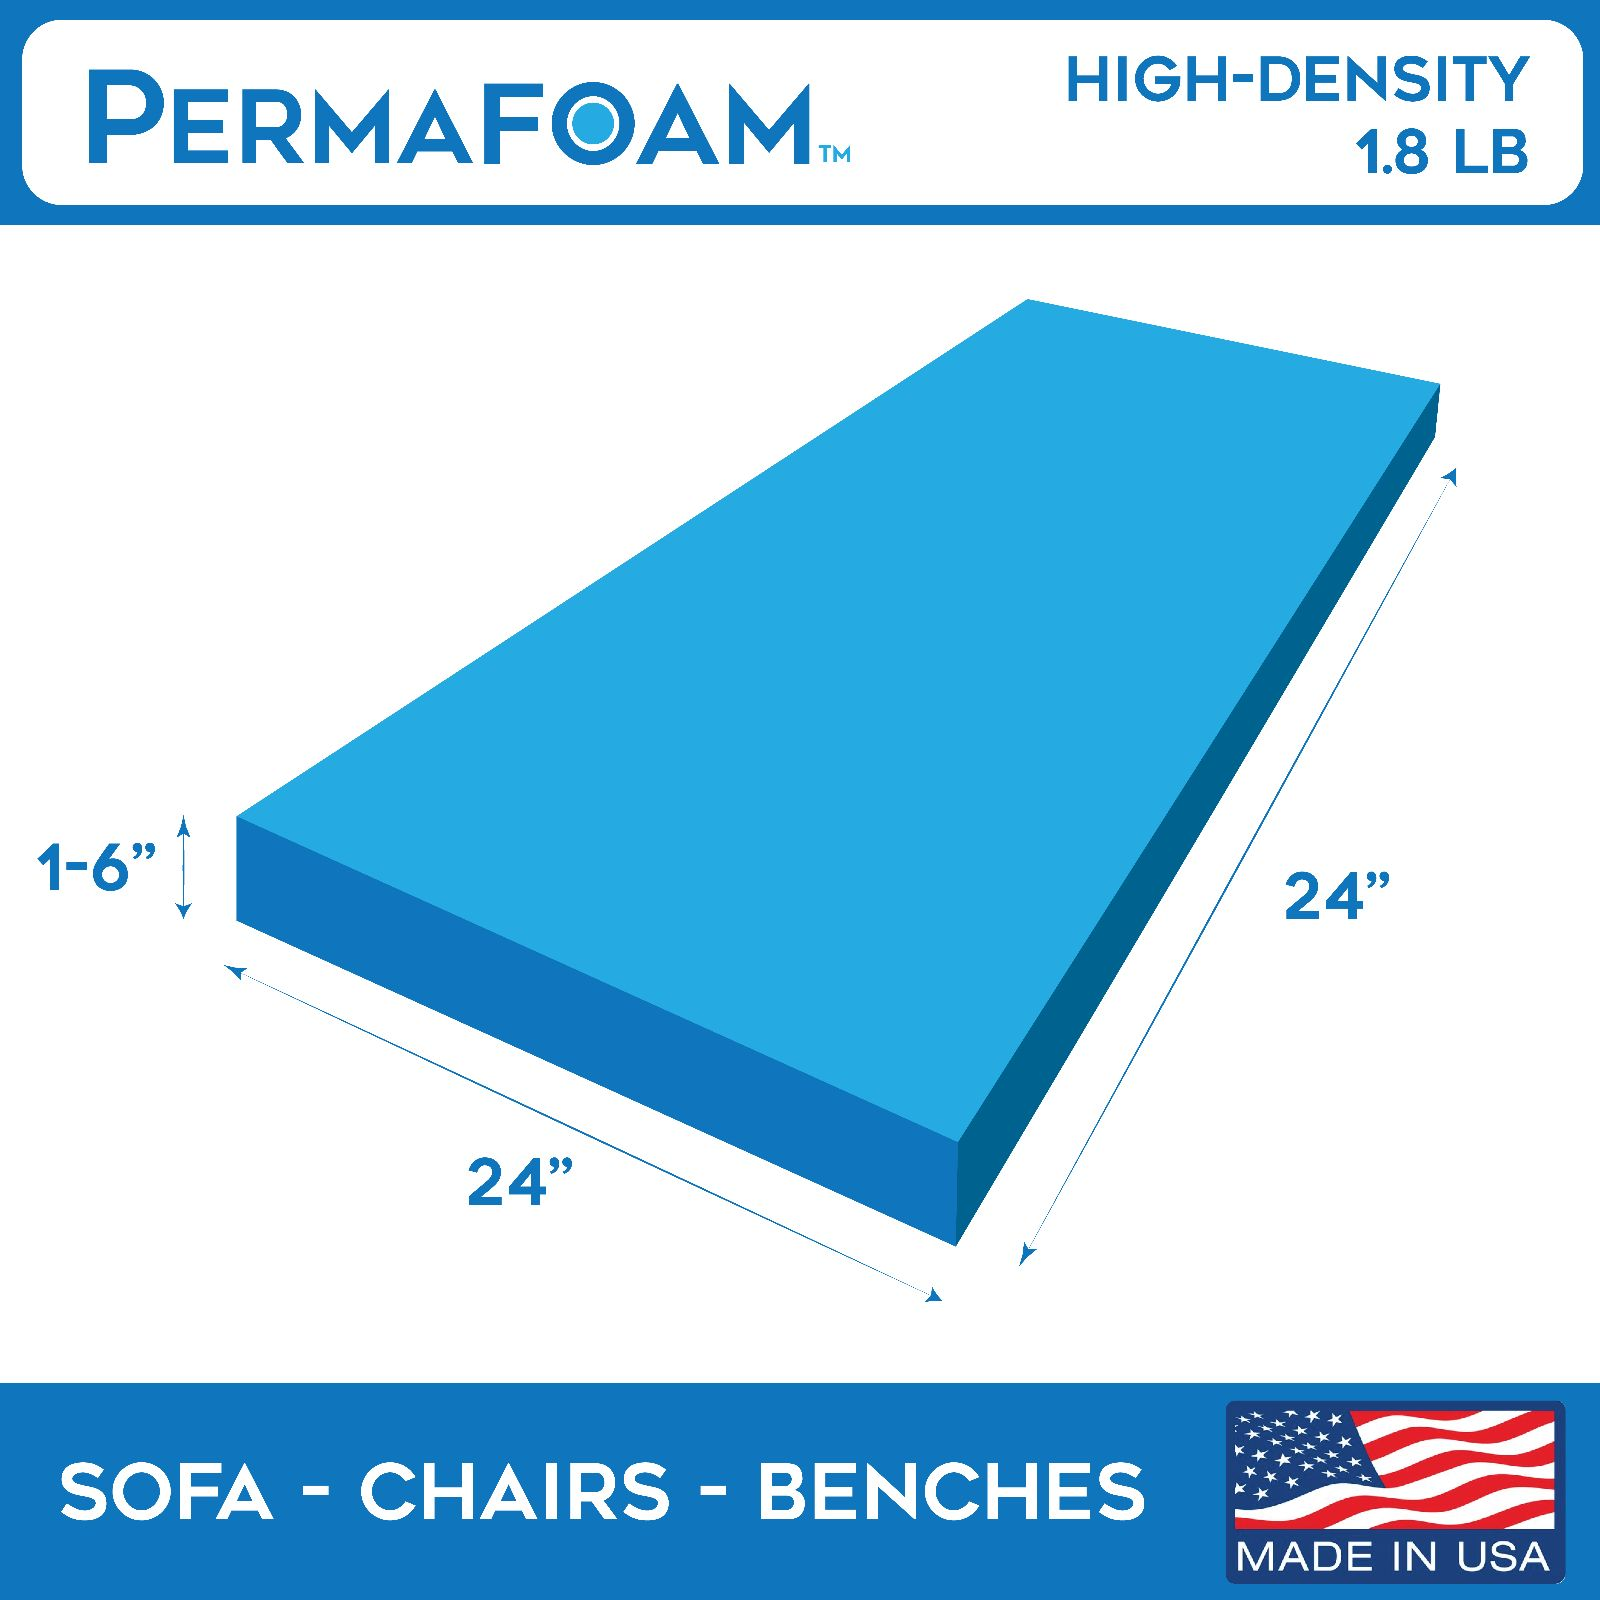 Foam Sheets 8434: Upholstery Cushion Foam - 24 X 24 High Density - Couches, Sofas, Benches, Chairs -> BUY IT NOW ONLY: $31.95 on eBay!